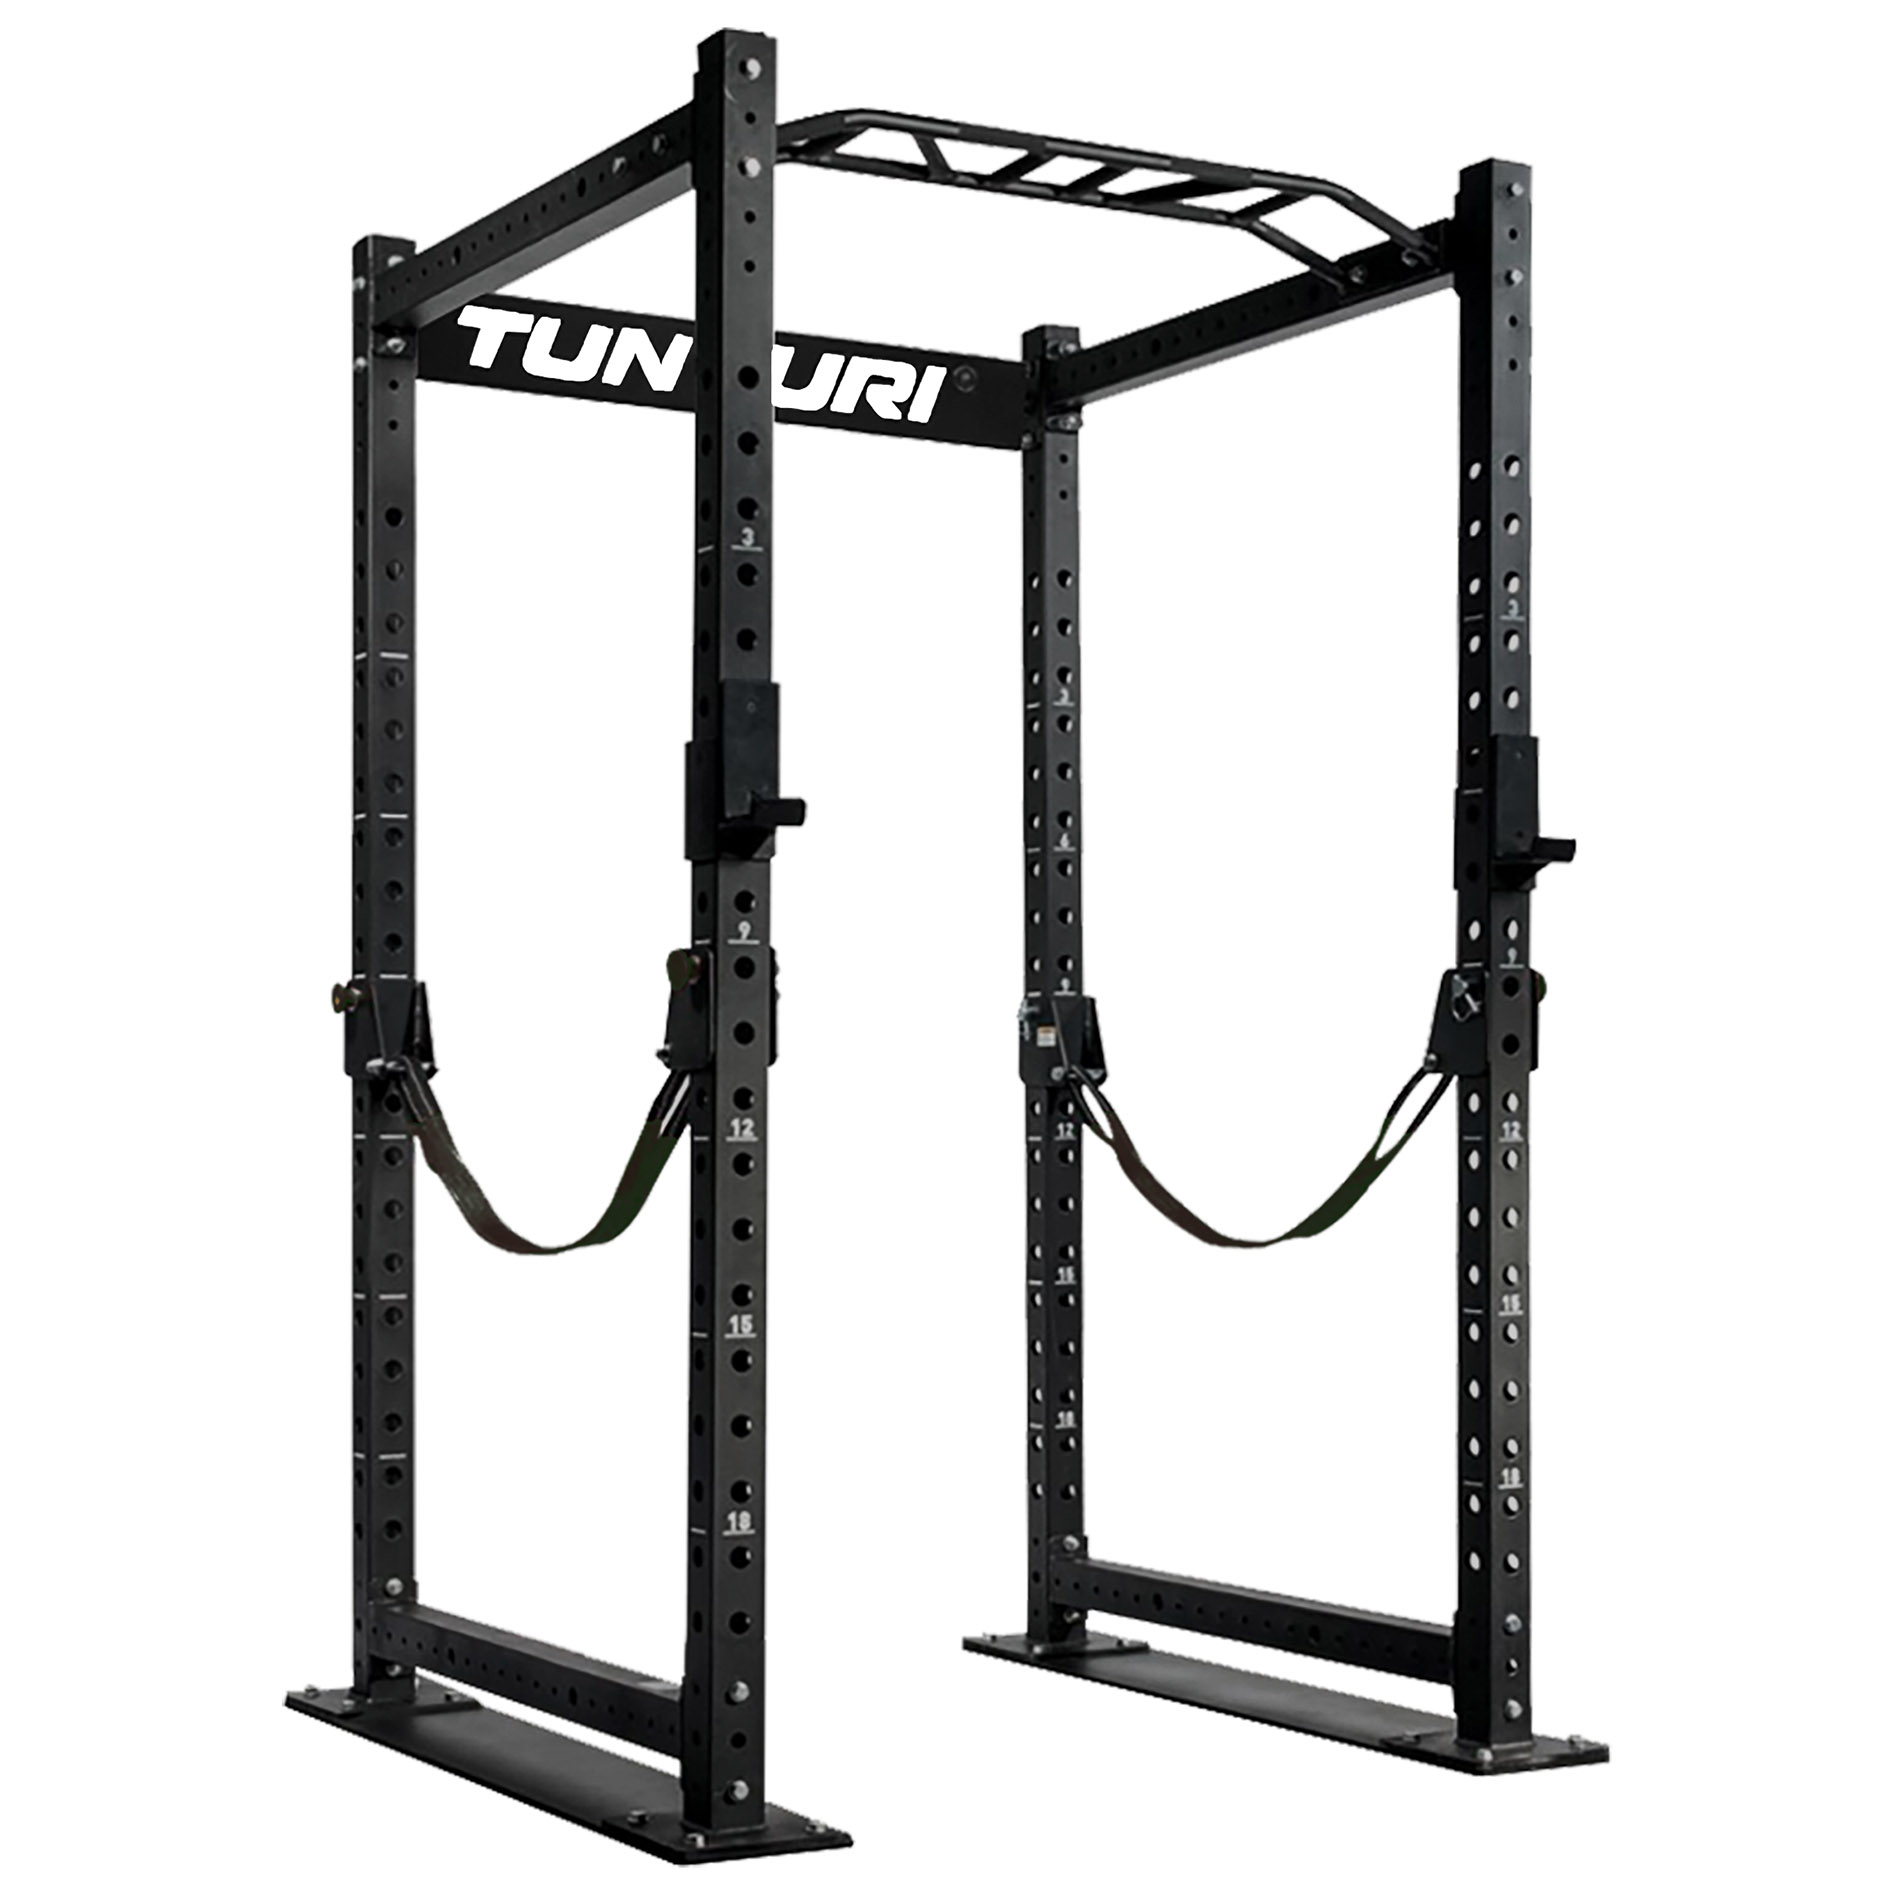 Tunturi RC20 Cross Fit Rack - J Hooks - Pair